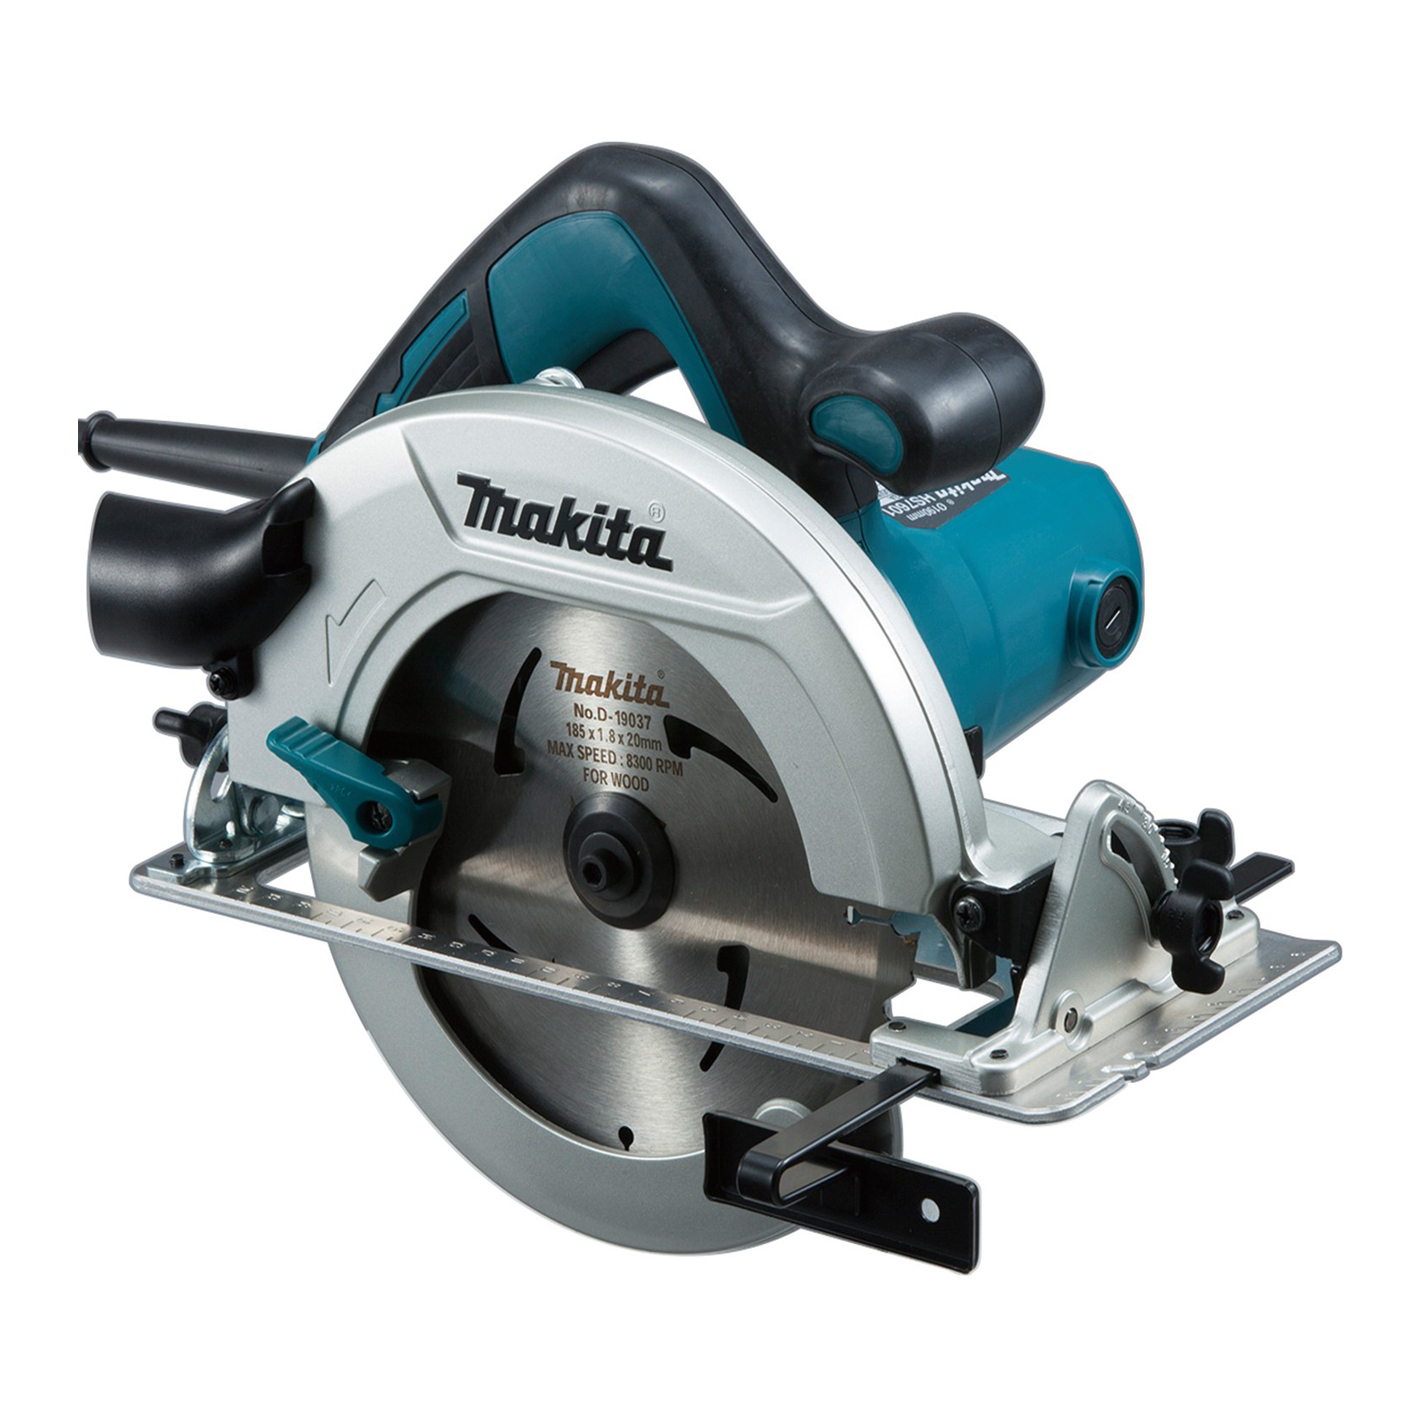 Makita HS7601 Sunta Kesme 190mm